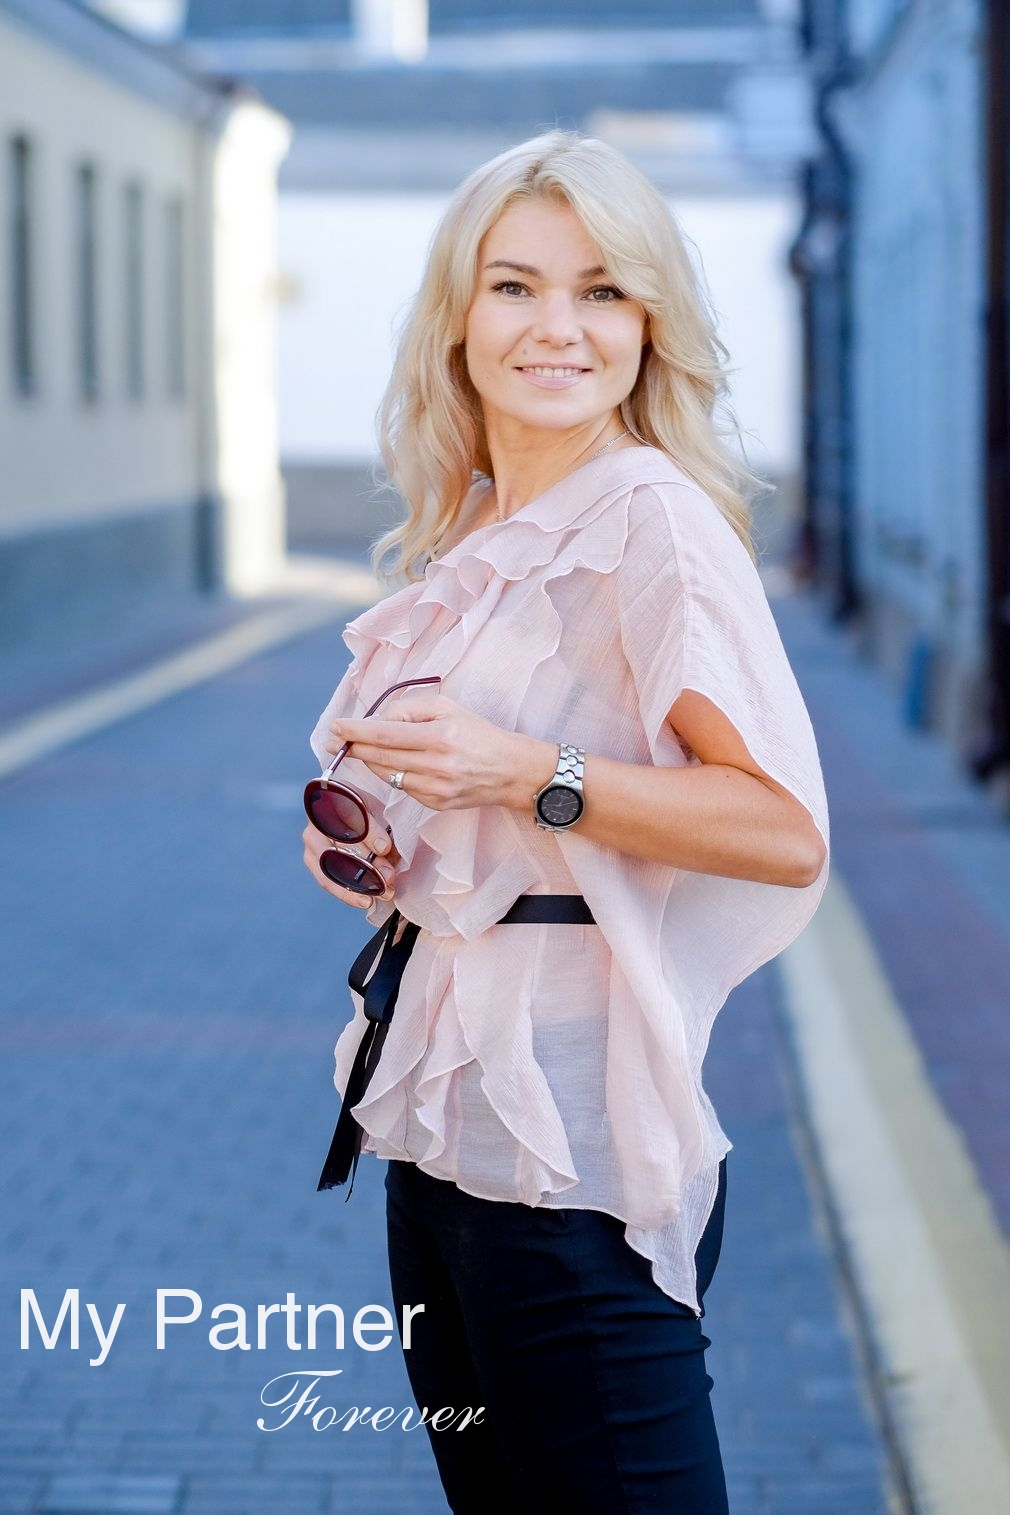 Dating Site to Meet Charming Belarusian Lady Olga from Grodno, Belarus